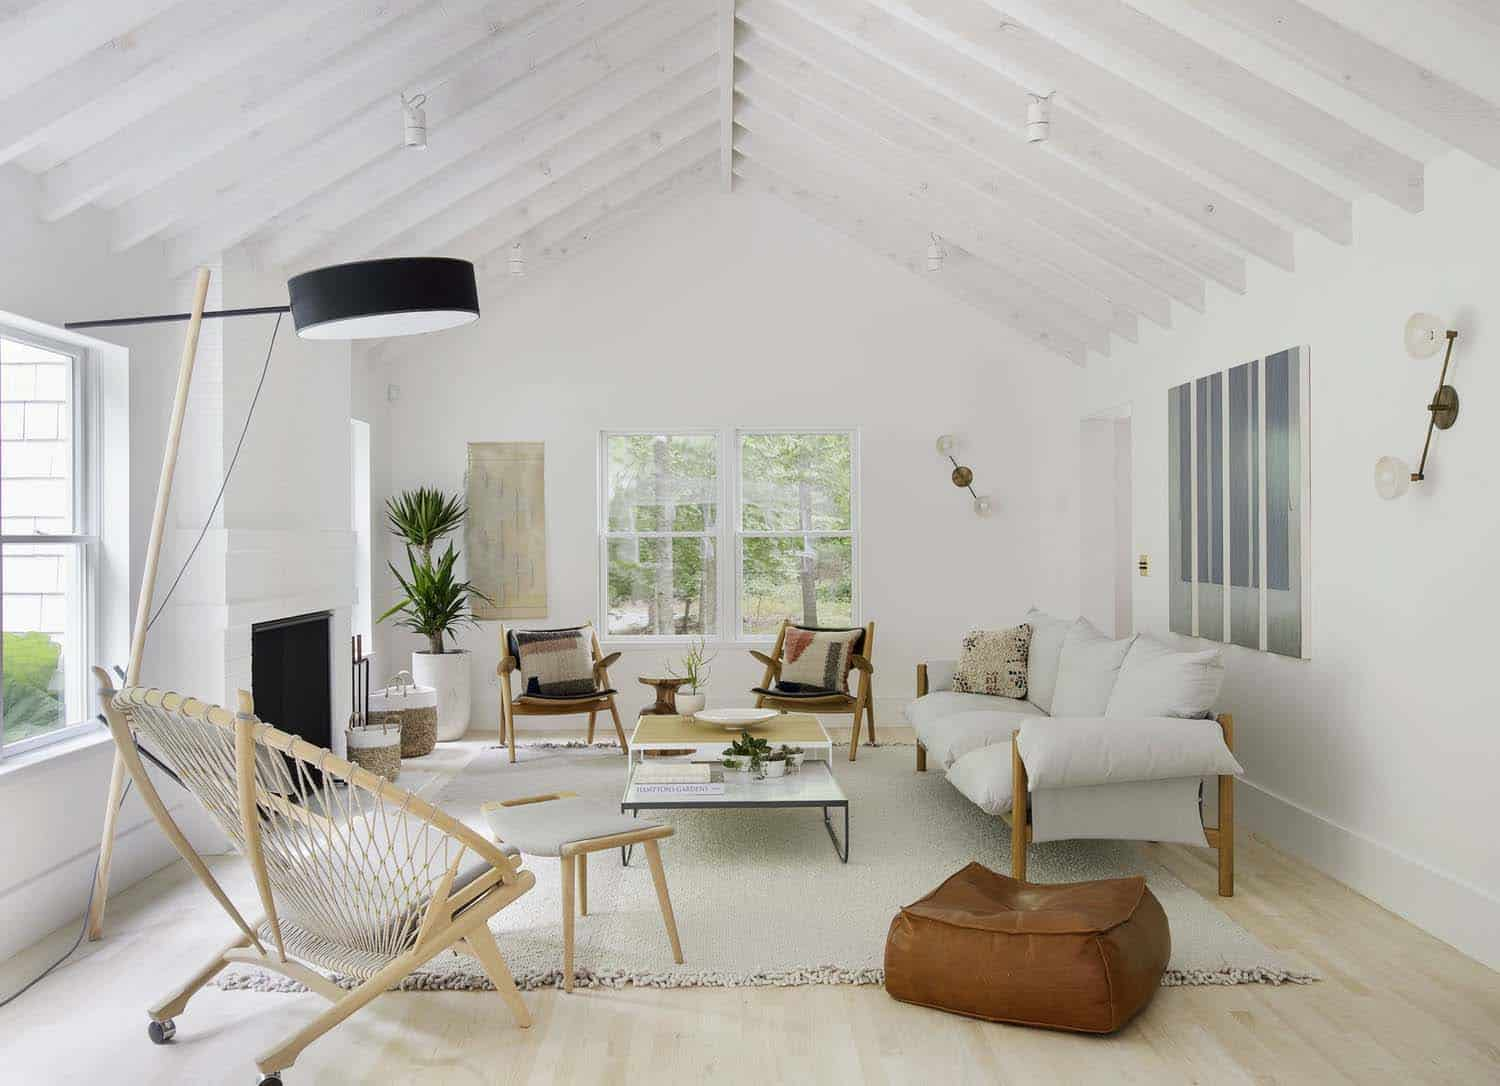 Scandinavian style beach retreat gets radiant makeover in amagansett for Danish design home accessories